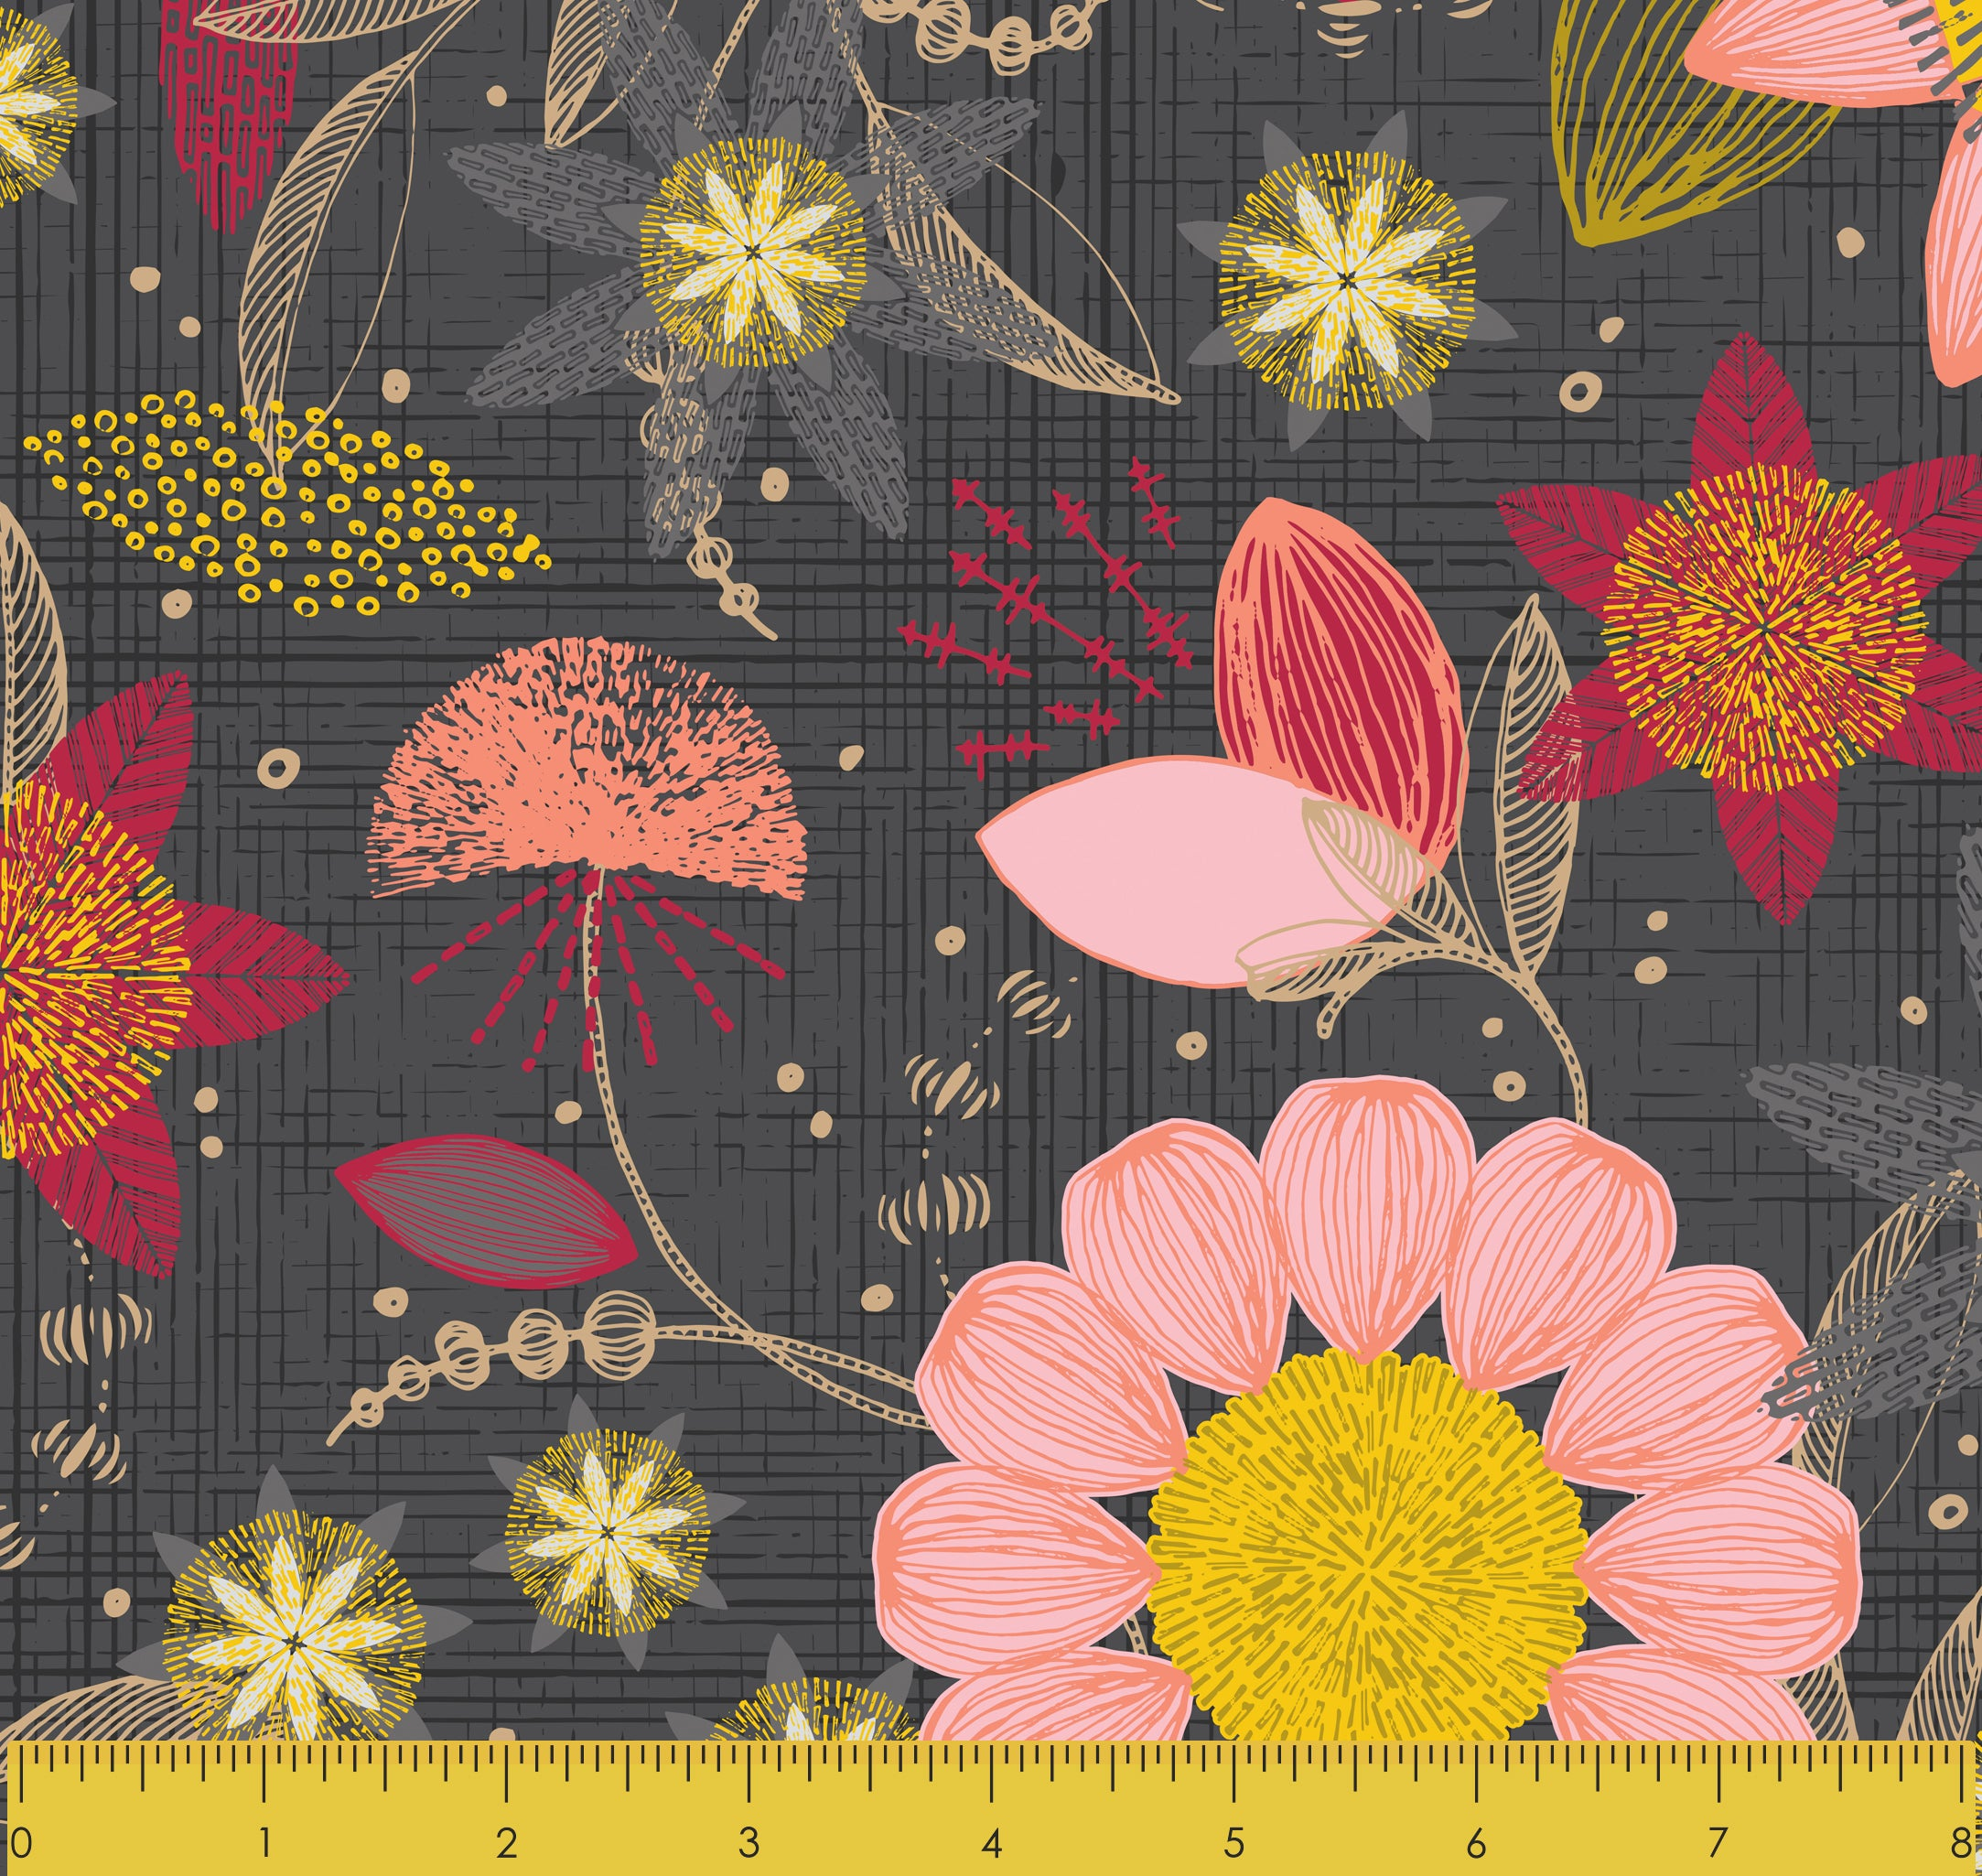 "Stitch & Sparkle Mid-Centry-Patio Burst Coral Dark 100% Cotton Fabric 44"" Wide, Quilt Crafts Cut by The Yard"